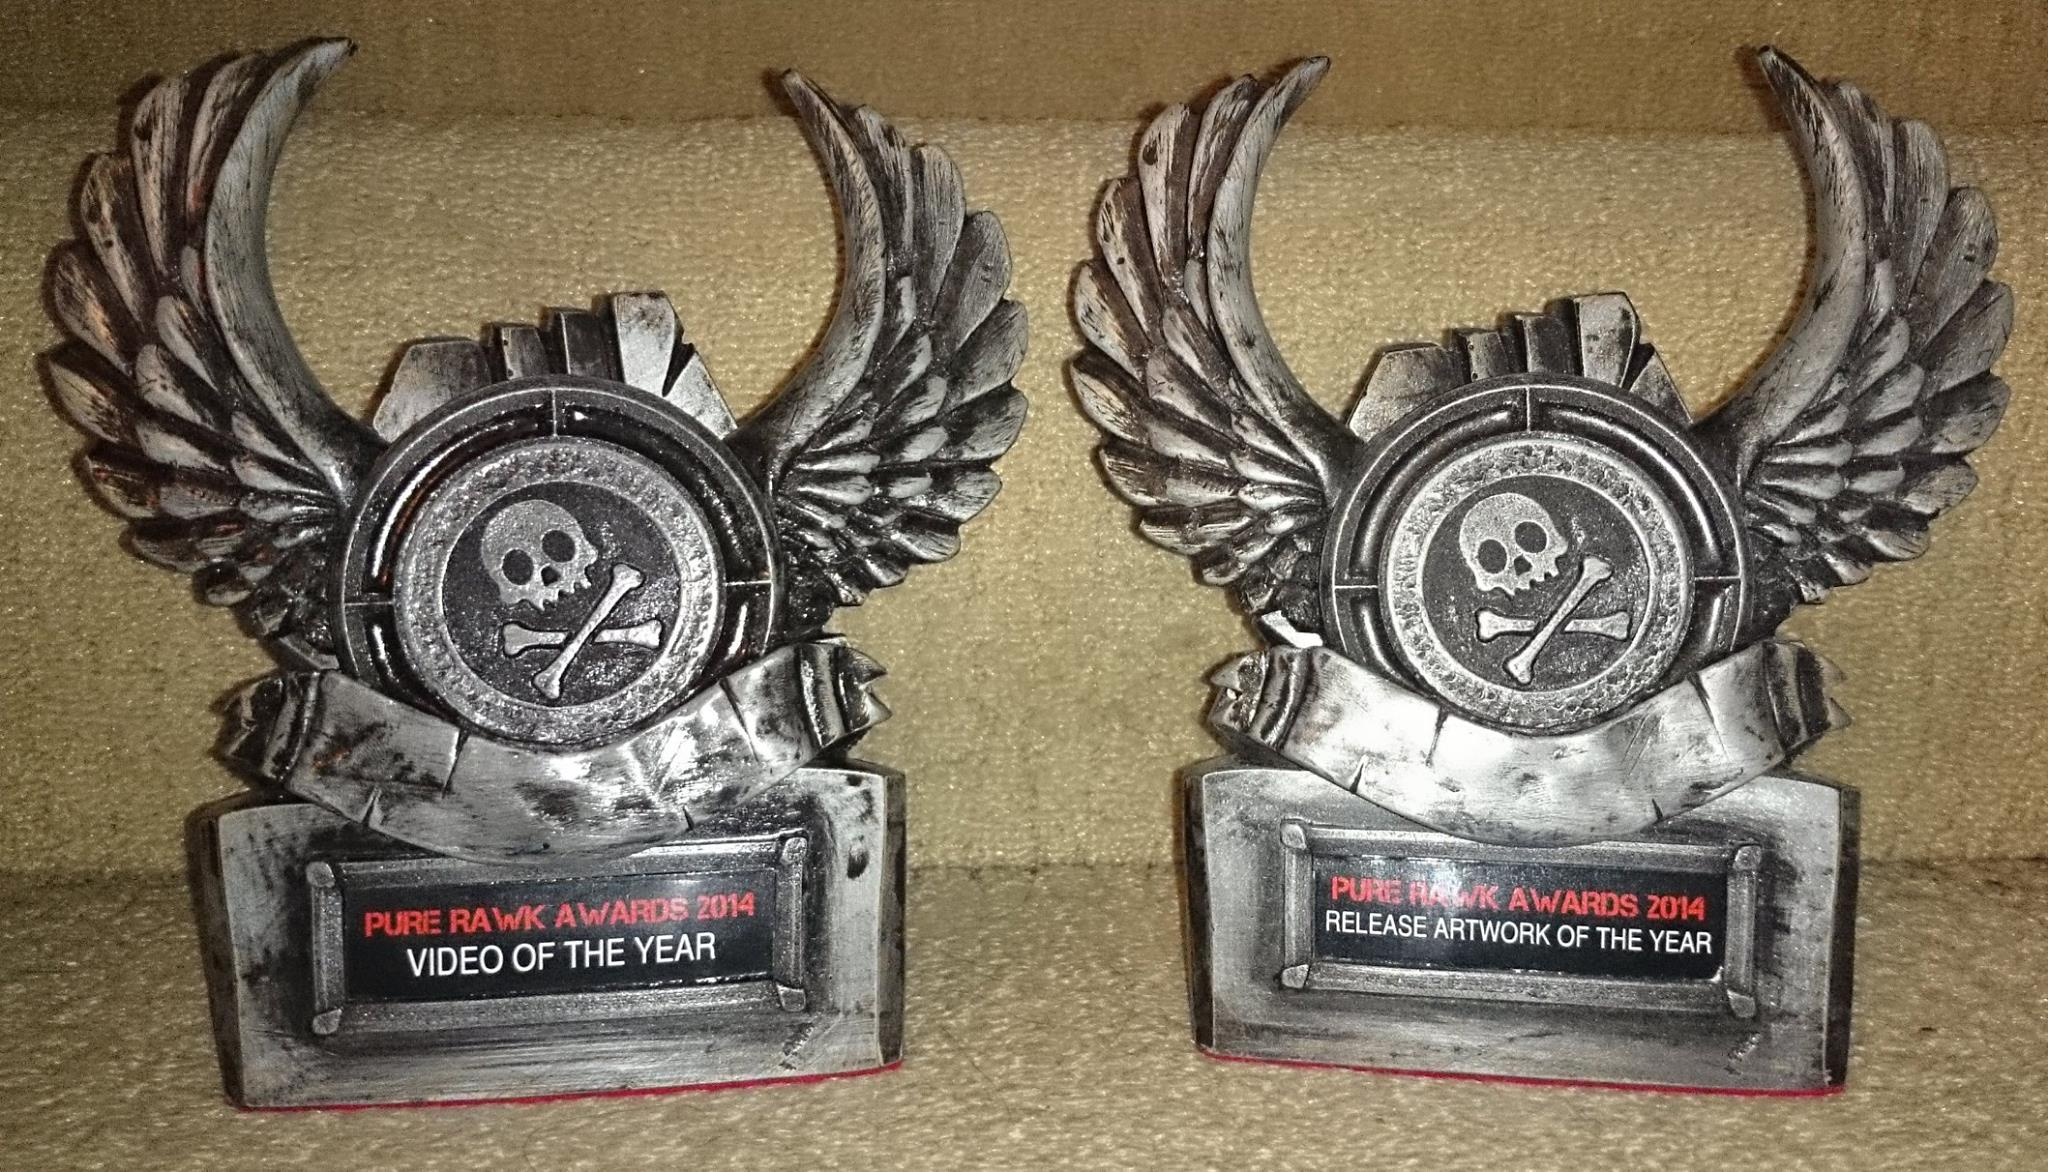 Pure Rawk awards for Best Artwork and Best Video